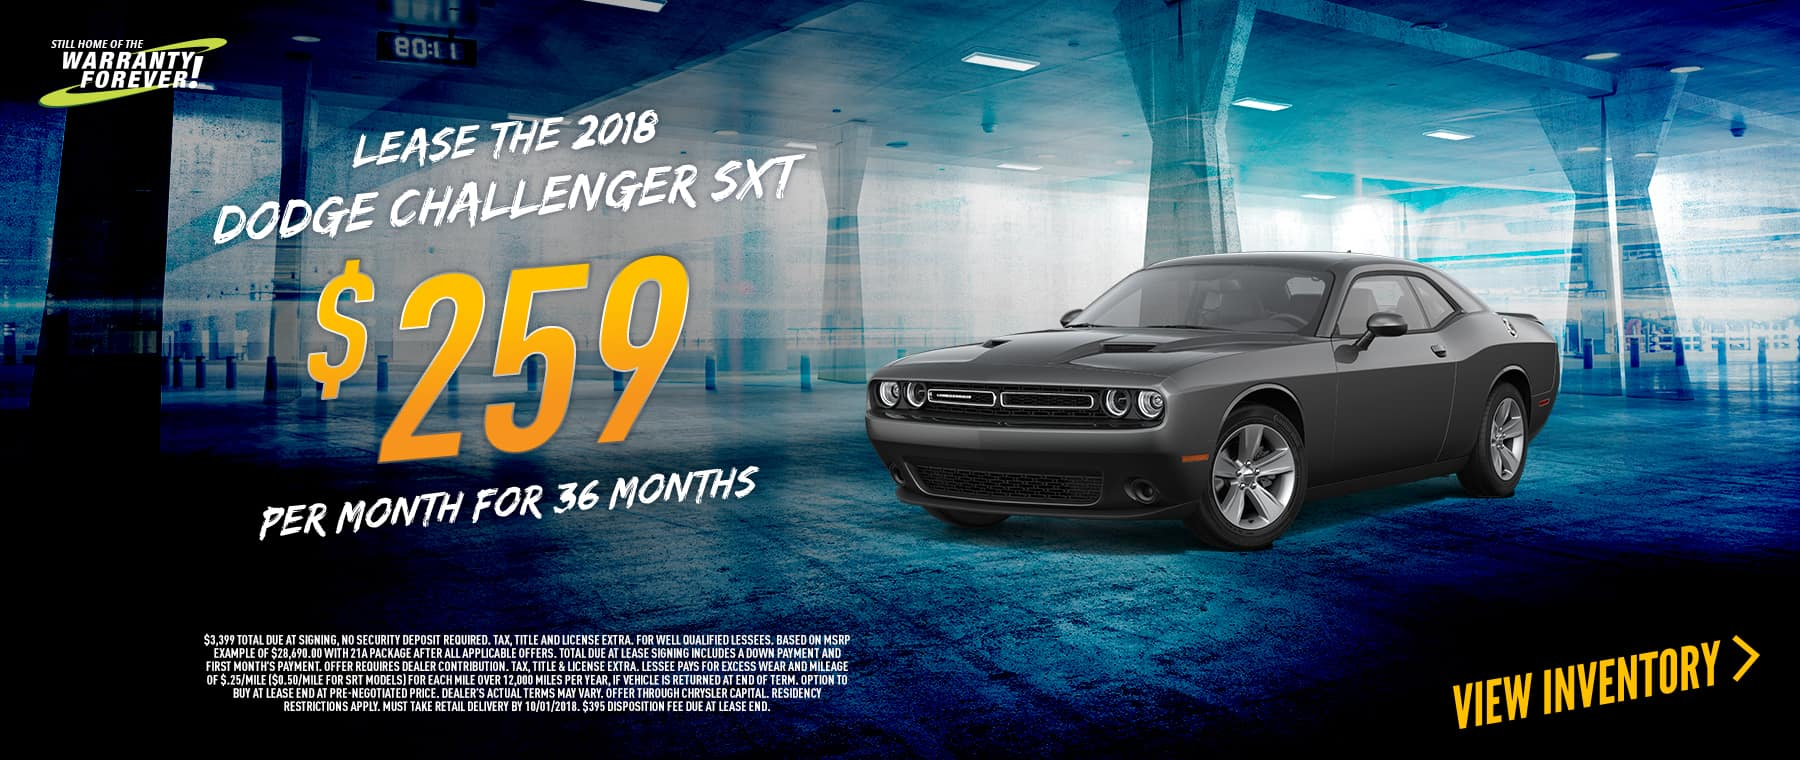 lease-2018-dodge-challenger-259-per-month